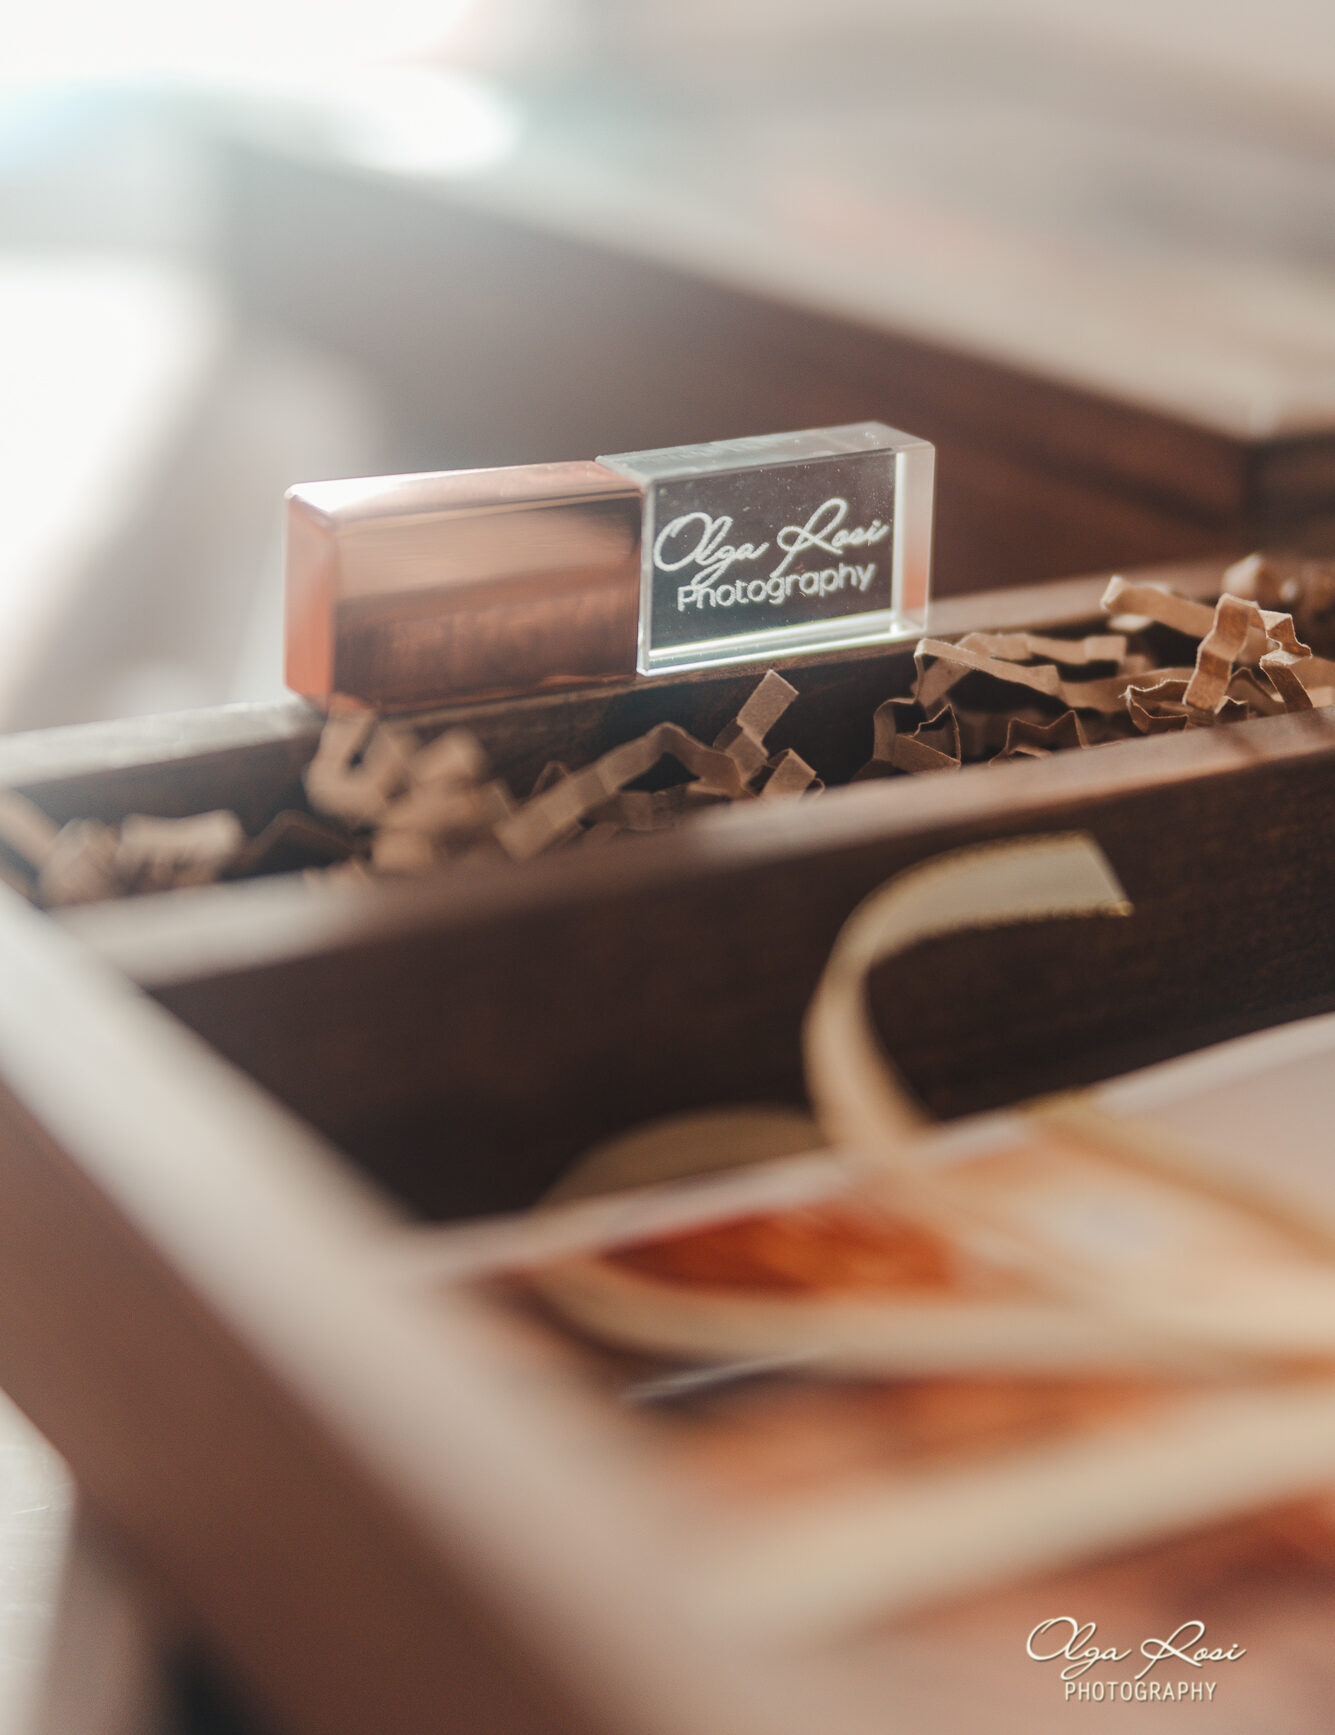 Photography delivery on USB drive with Olga Rosi Photography logo